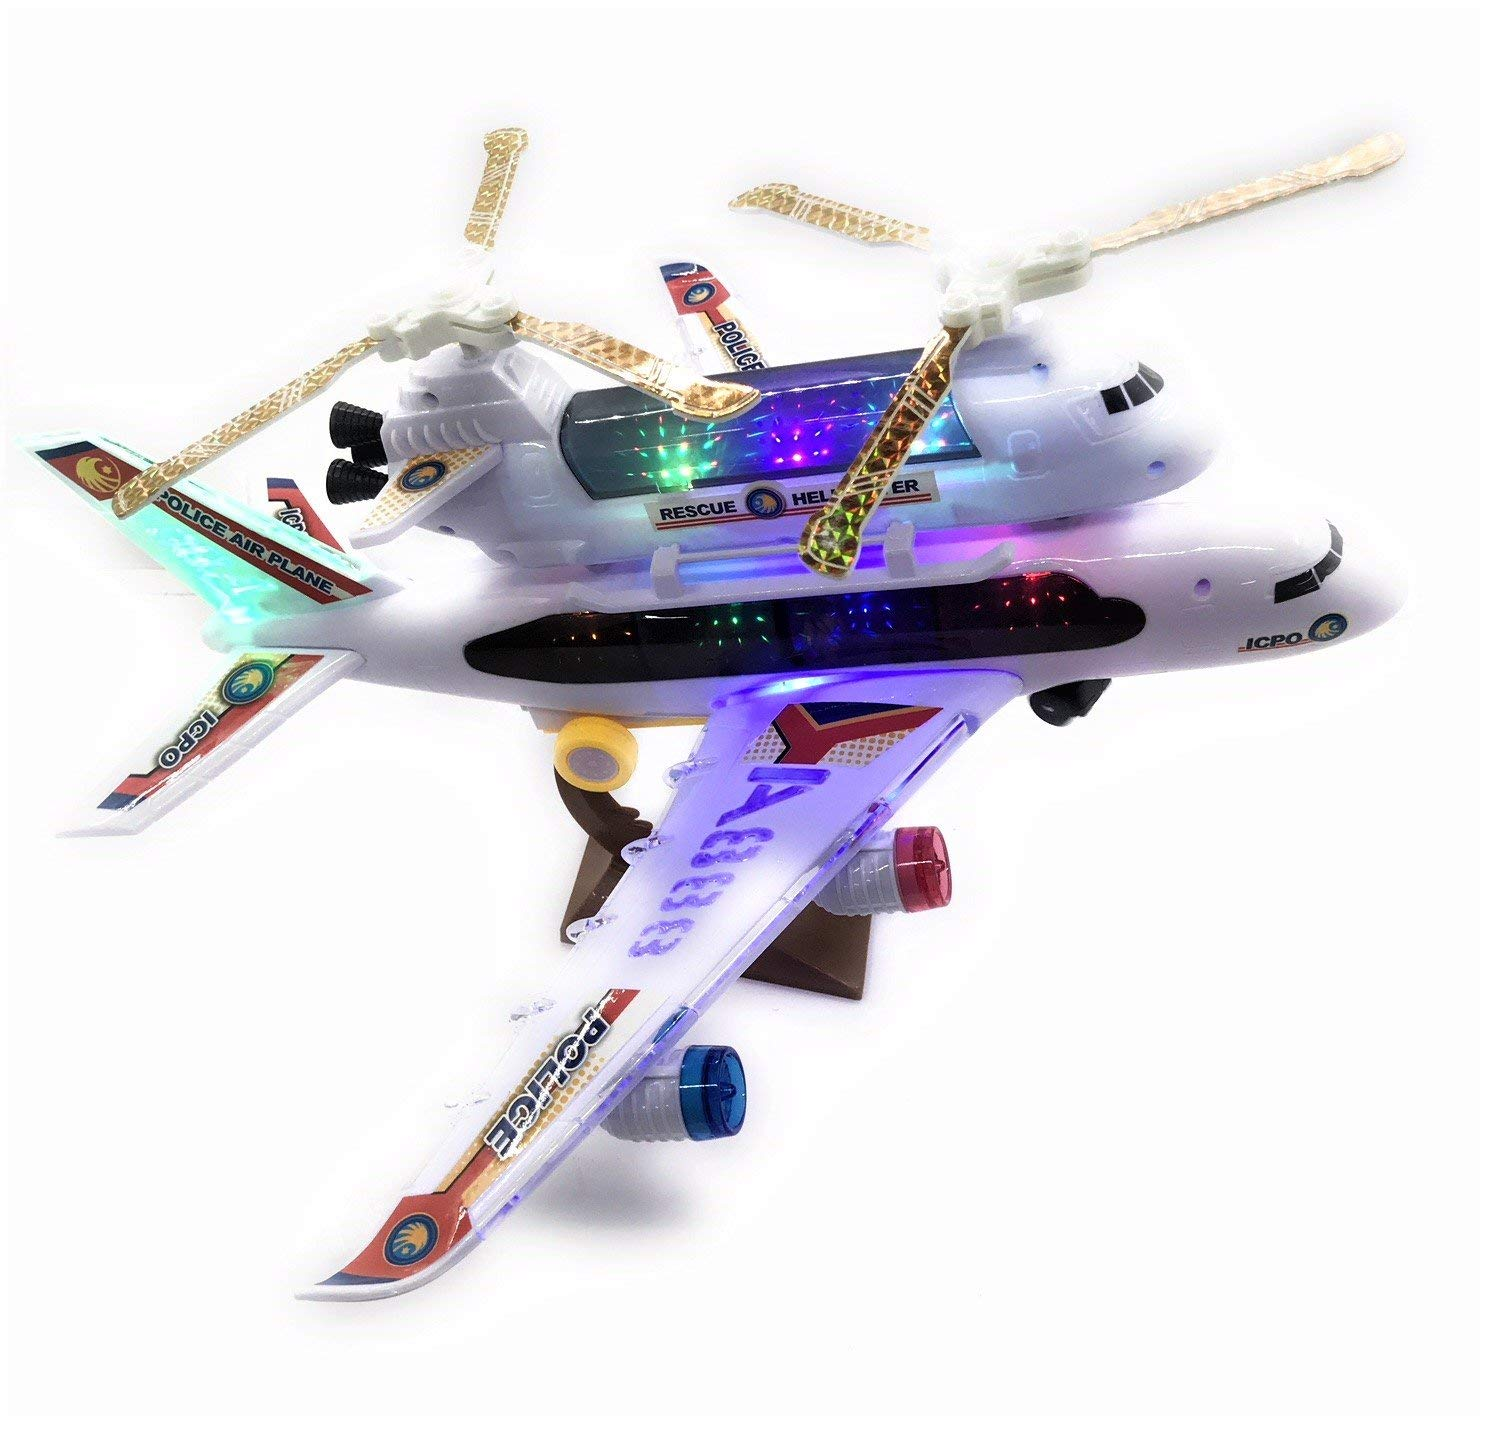 2-in-1 Kids Airplane & Helicopter Toy Bump & Go Action Airplane Toy Airliner Airbus w/ Attached Rescue Helicopter , Flashing 4D Lights & Jet Engine Sounds | Take-A-Part Airplane Toy For Kids